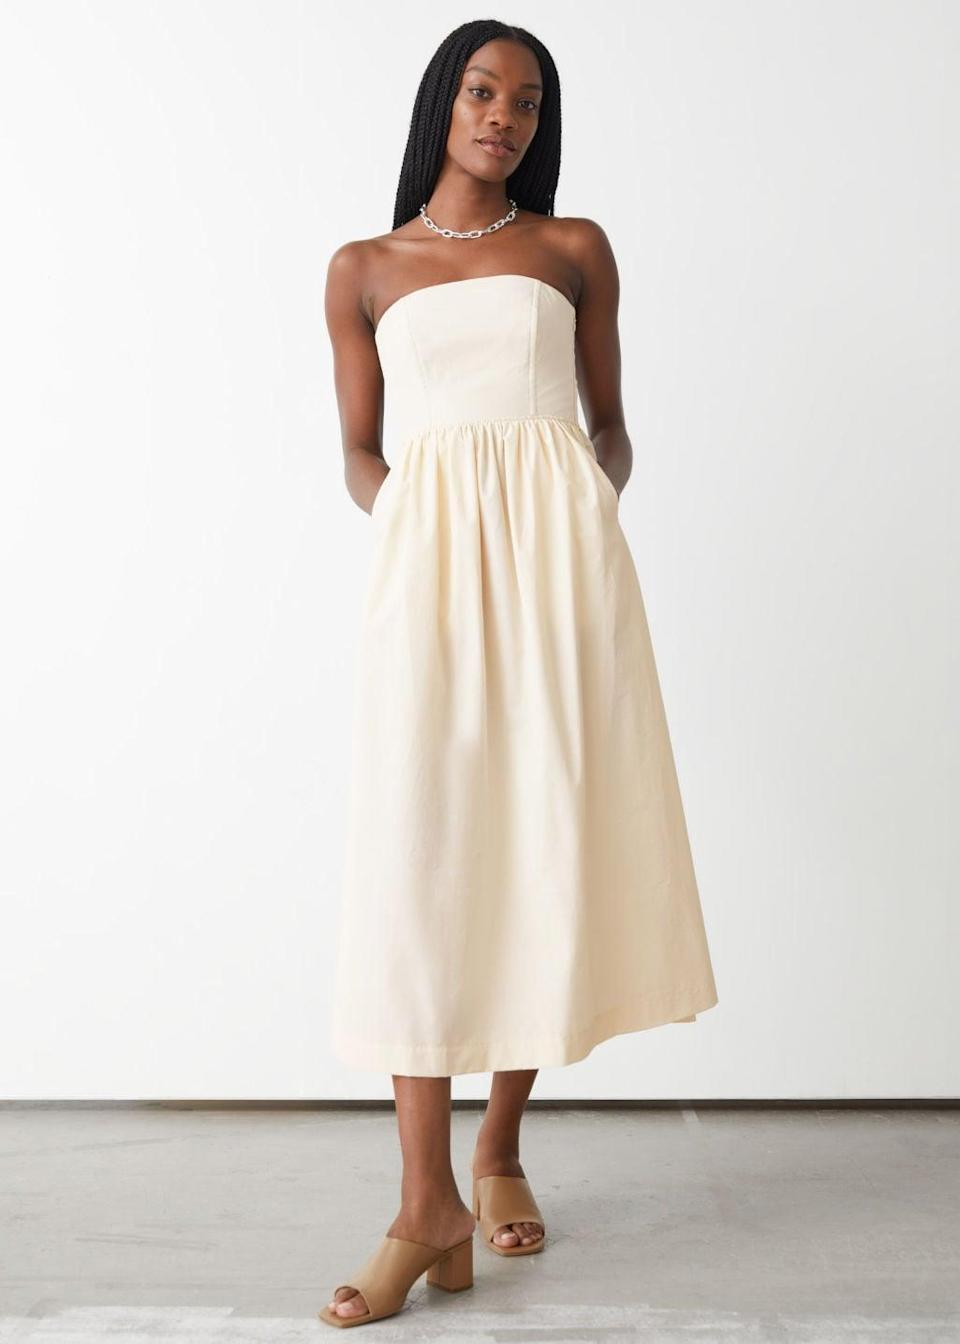 <p>This <span>&amp; Other Stories Voluminous Bandeau Midi Dress</span> ($129) will make a statement in the most understated way. It looks crisp, modern and polished.</p>